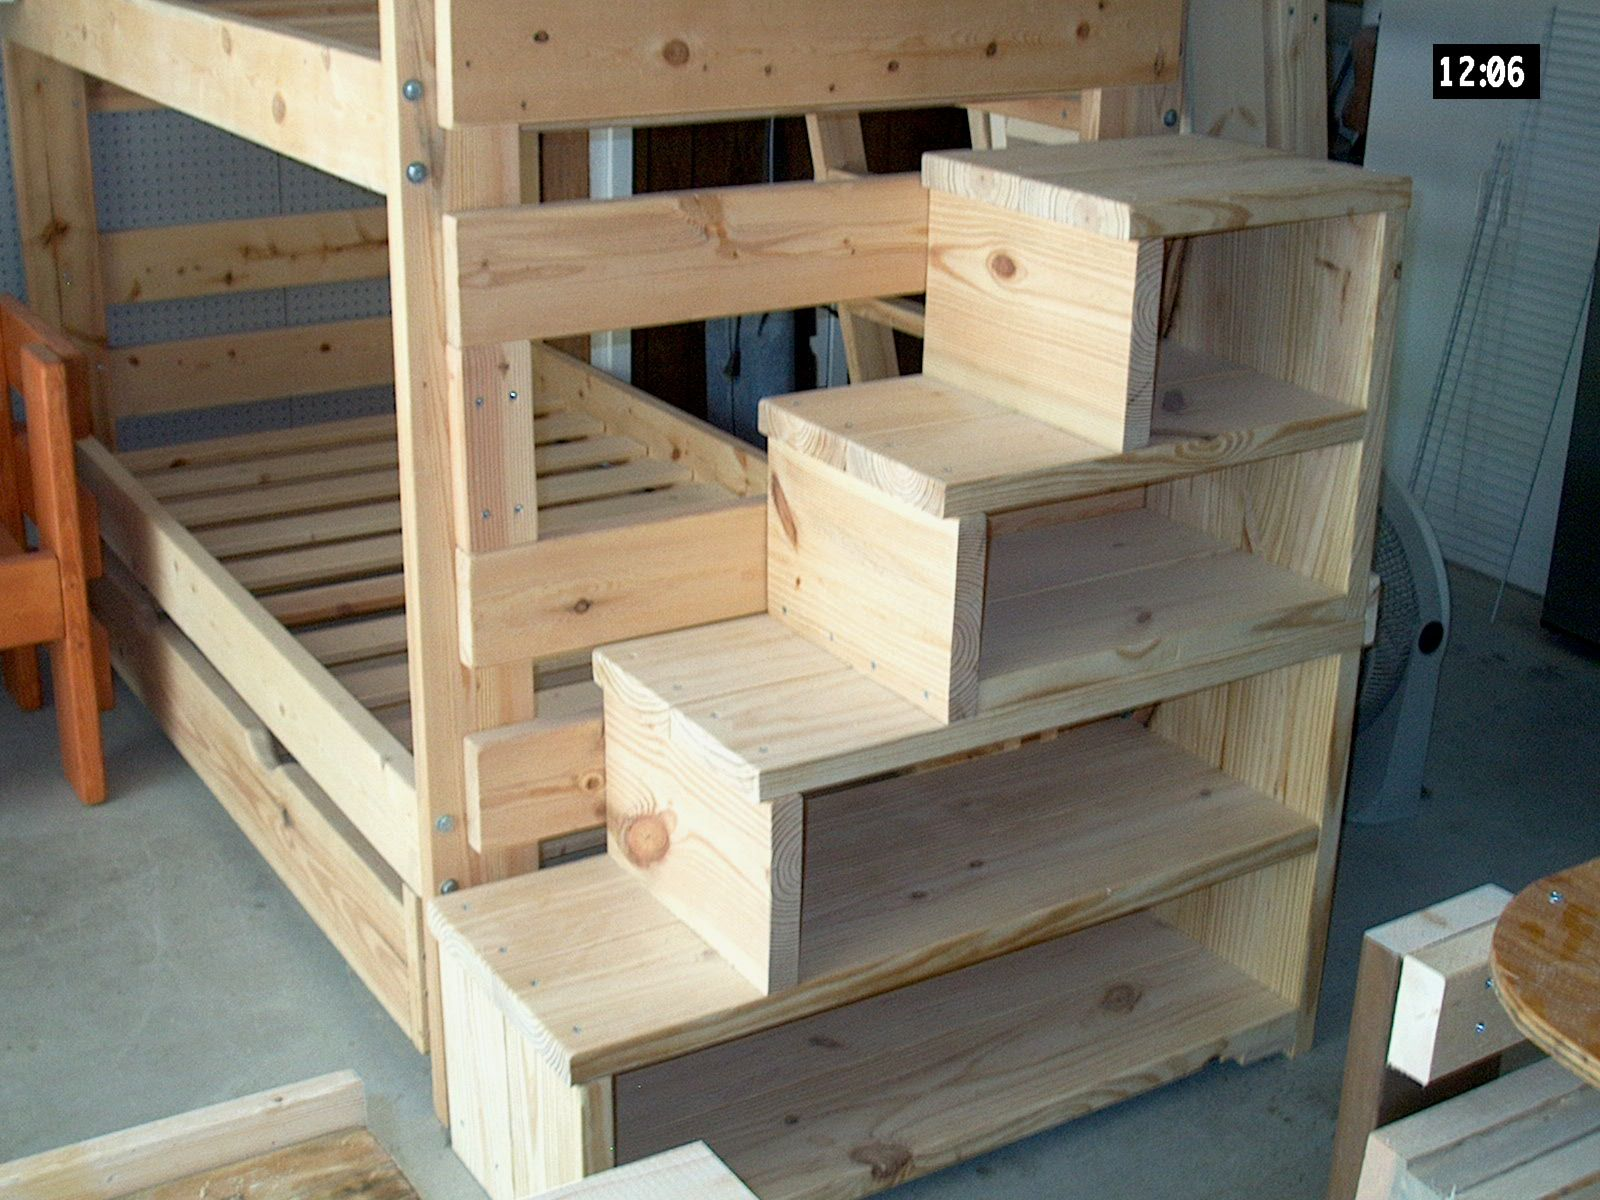 Advantages And Drawbacks Of Strong Wooden Loft Bed With Stairs Sturdy stair and storage - link is worthless but pic is self explanatory  and looks like easy DIY